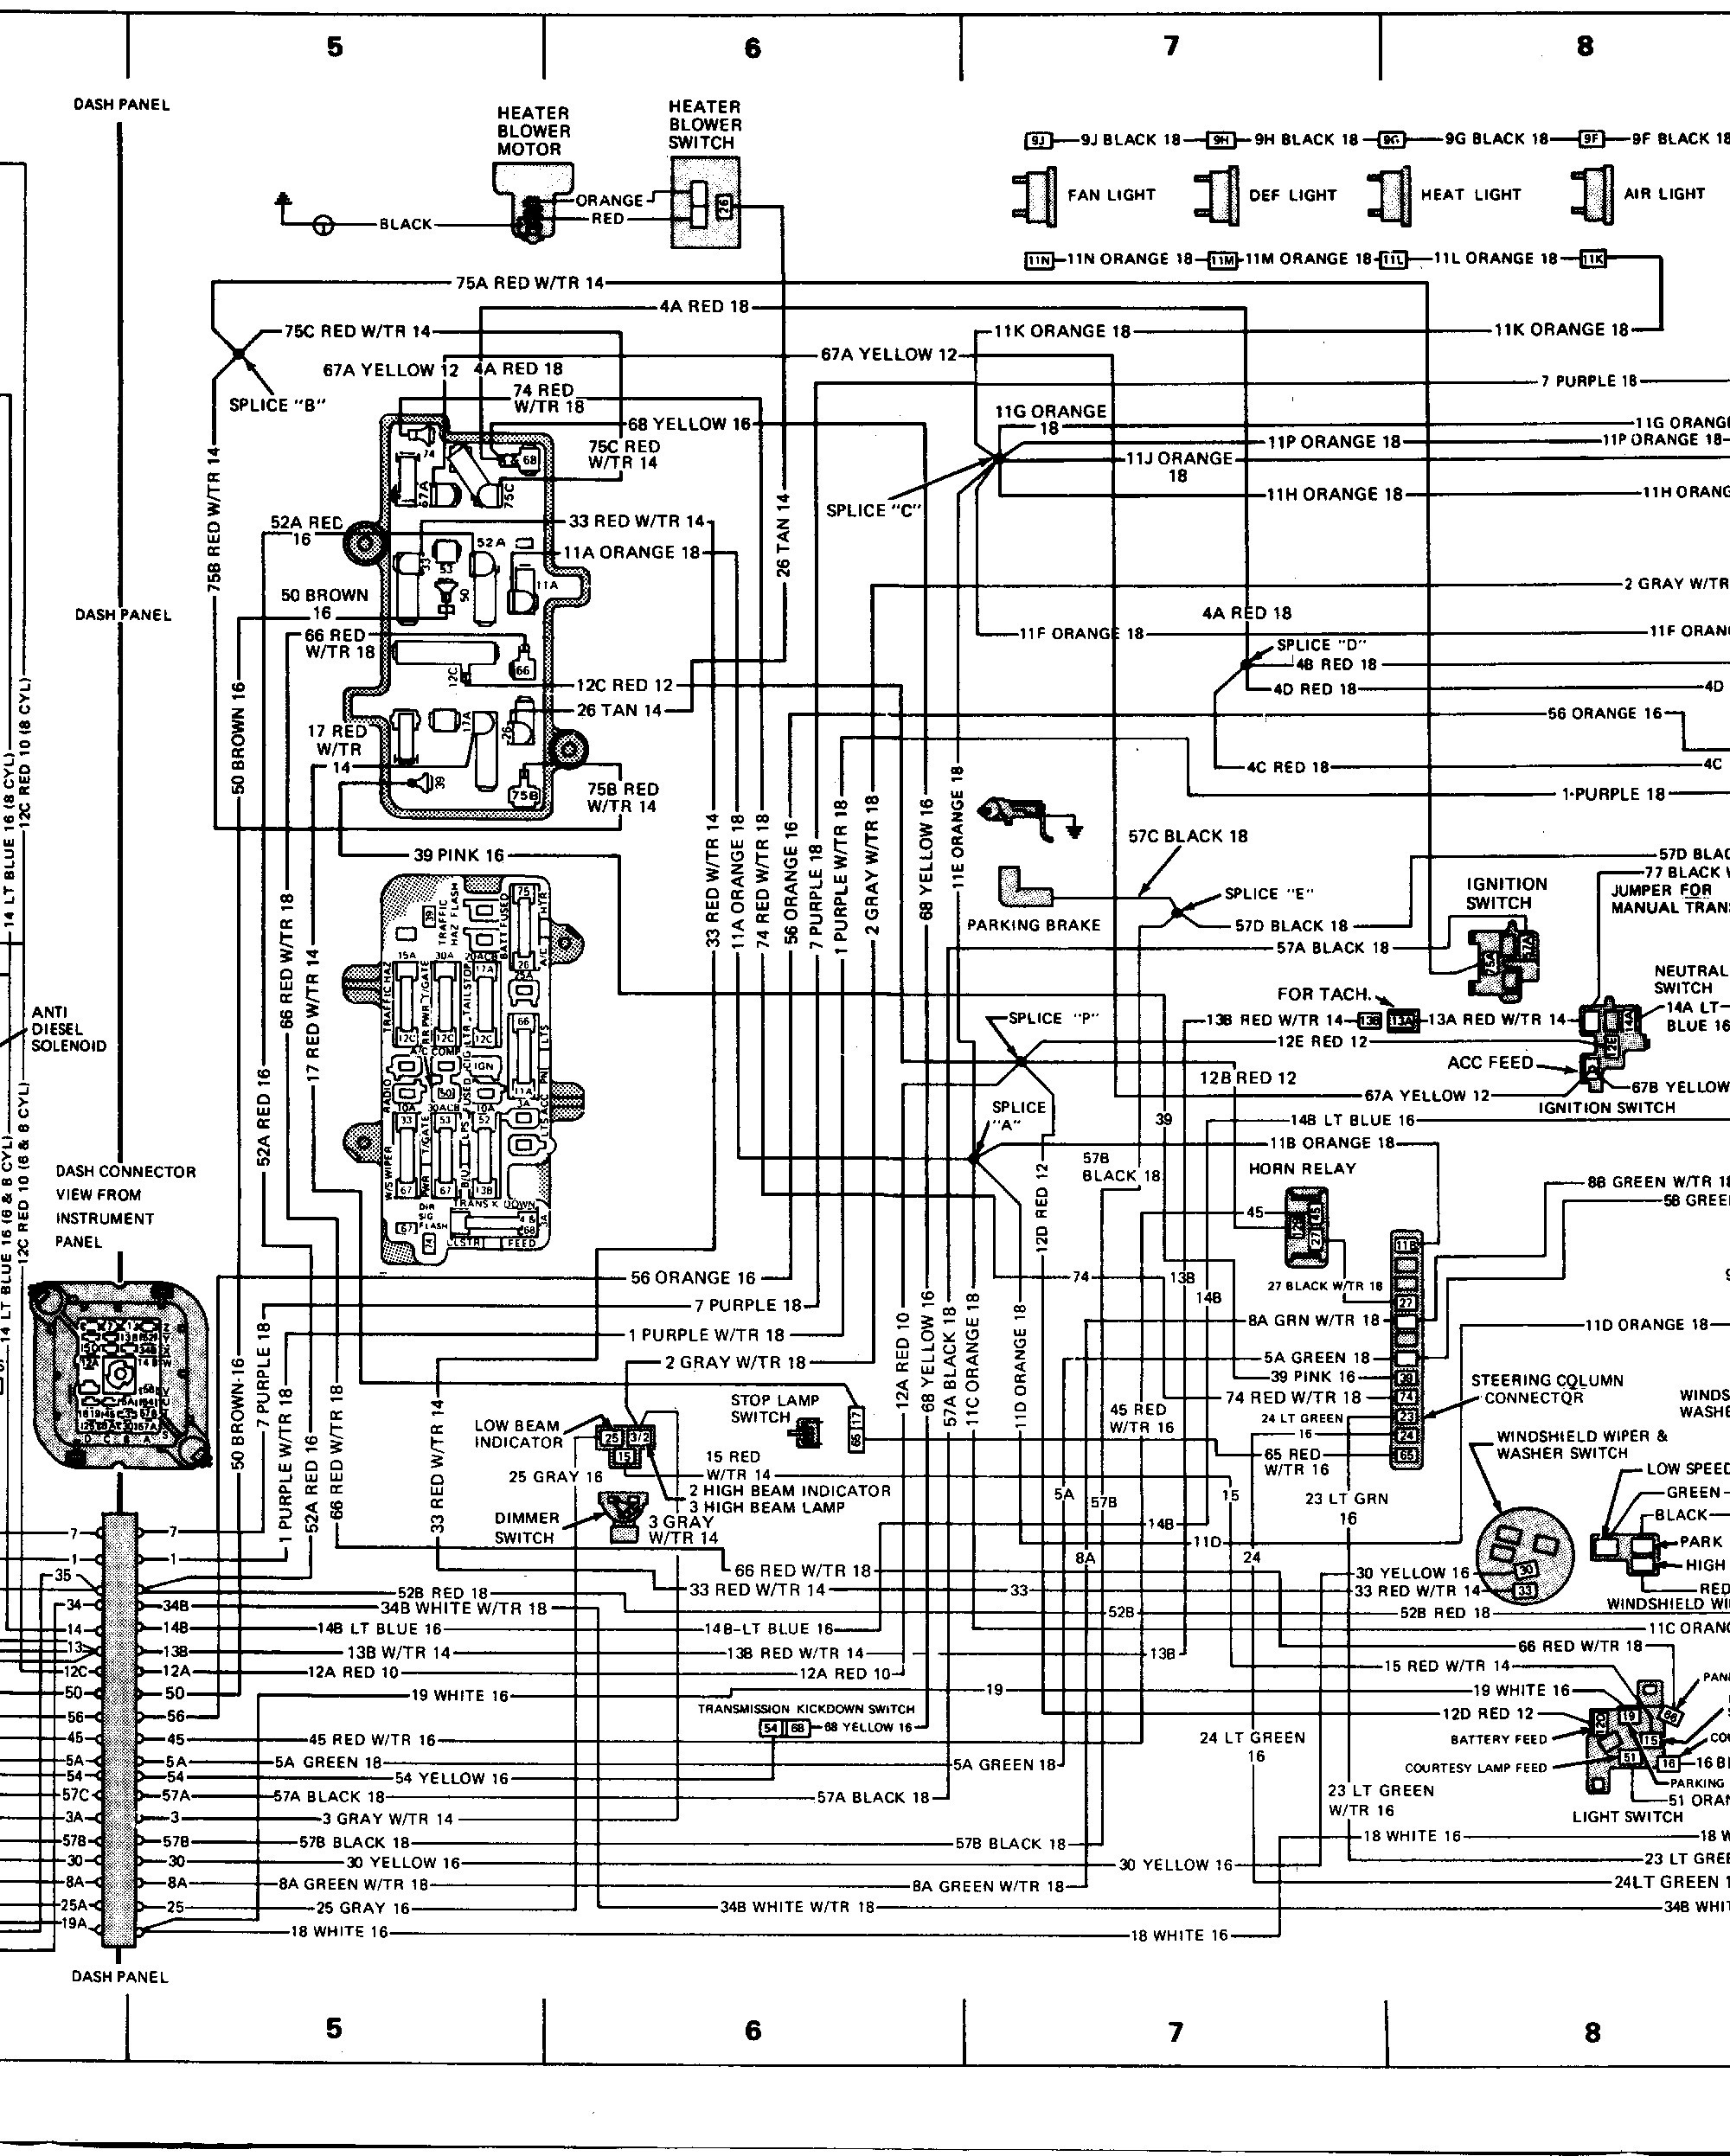 Amc 401 Wiring Diagram - Wiring Diagram Save J Swap Wiring Diagram on